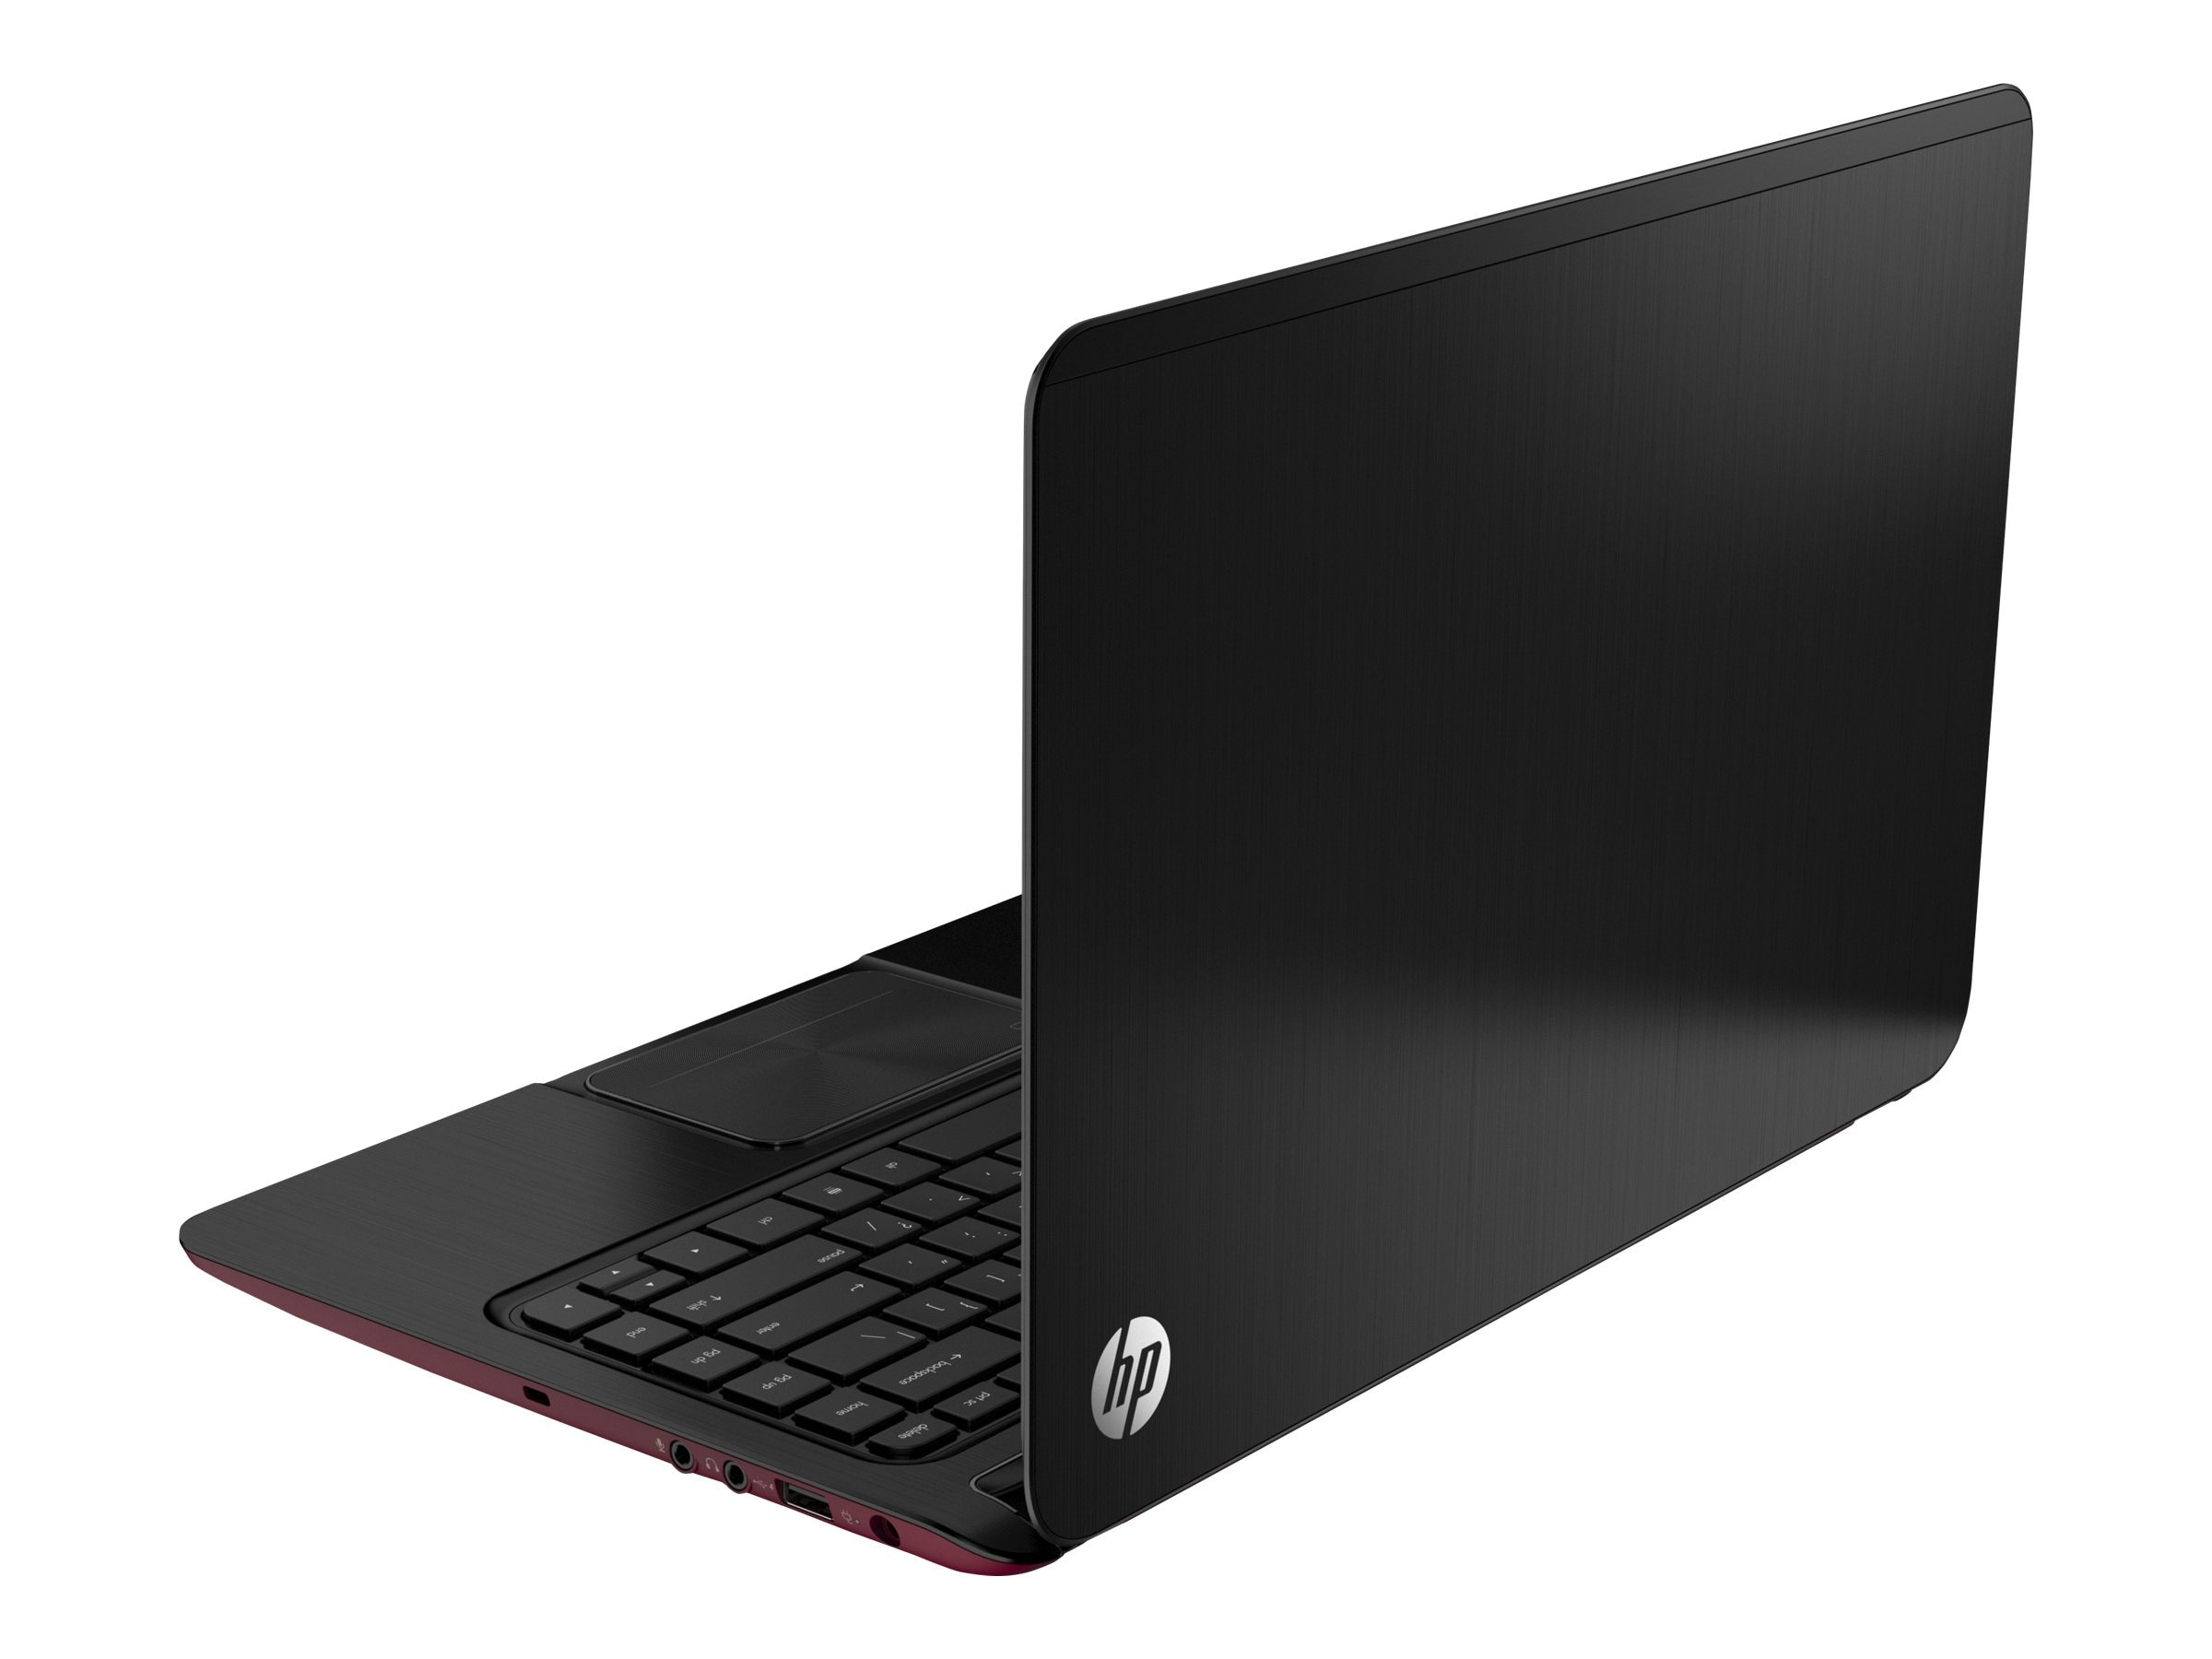 HP Envy 4-1038nr UltraBook